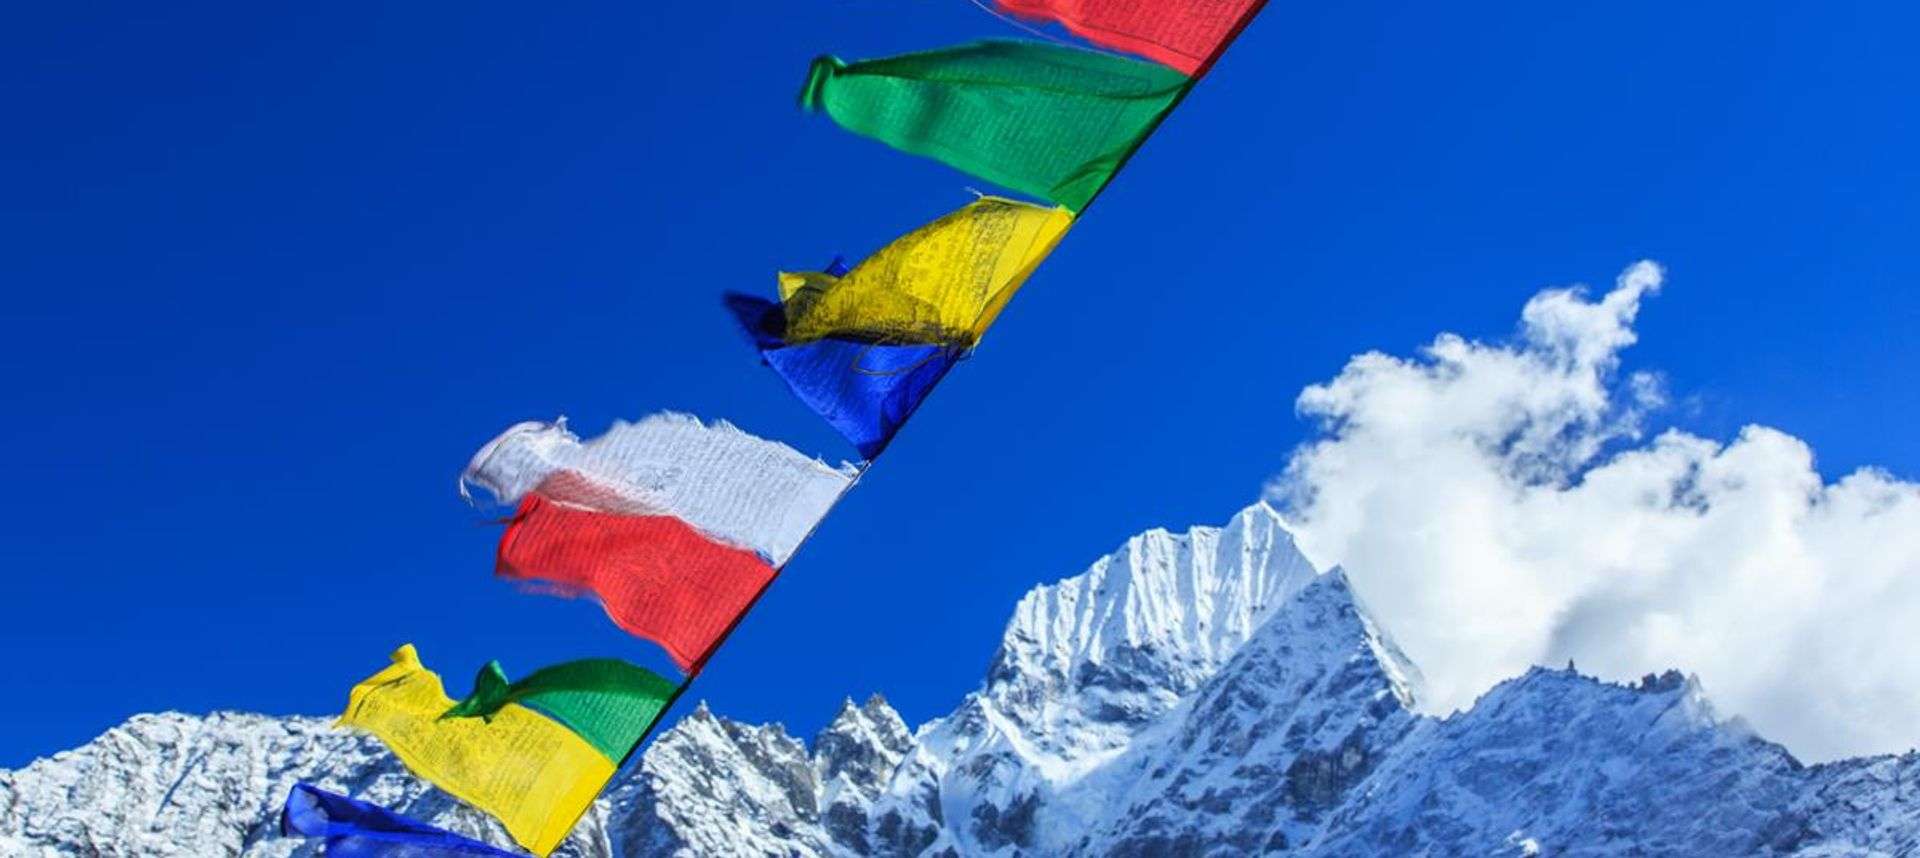 Prayer flags flutter over the Nepalese Himalaya (LVW/wanderlust.co.uk/mywanderlust)